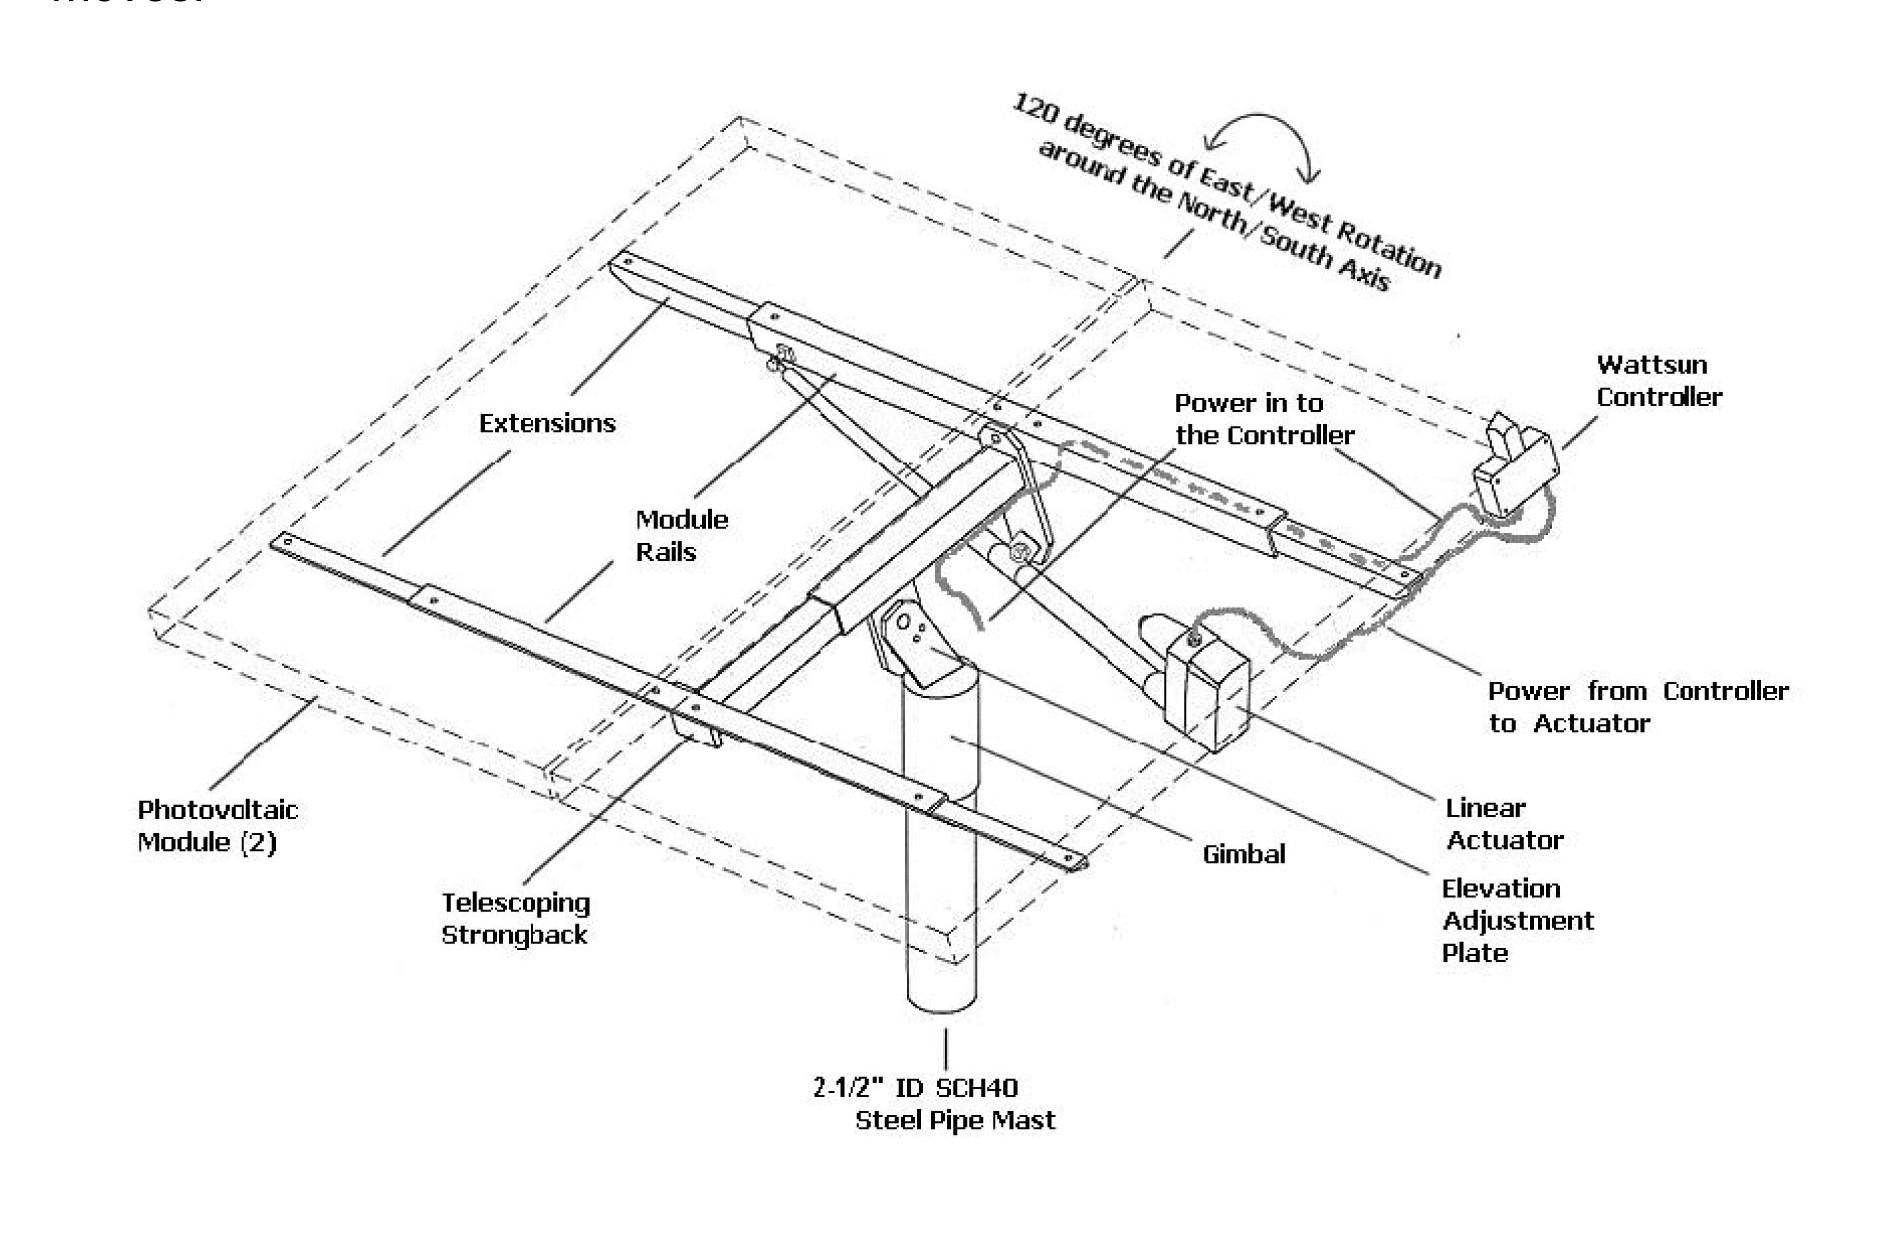 installation-of-linear-actuator